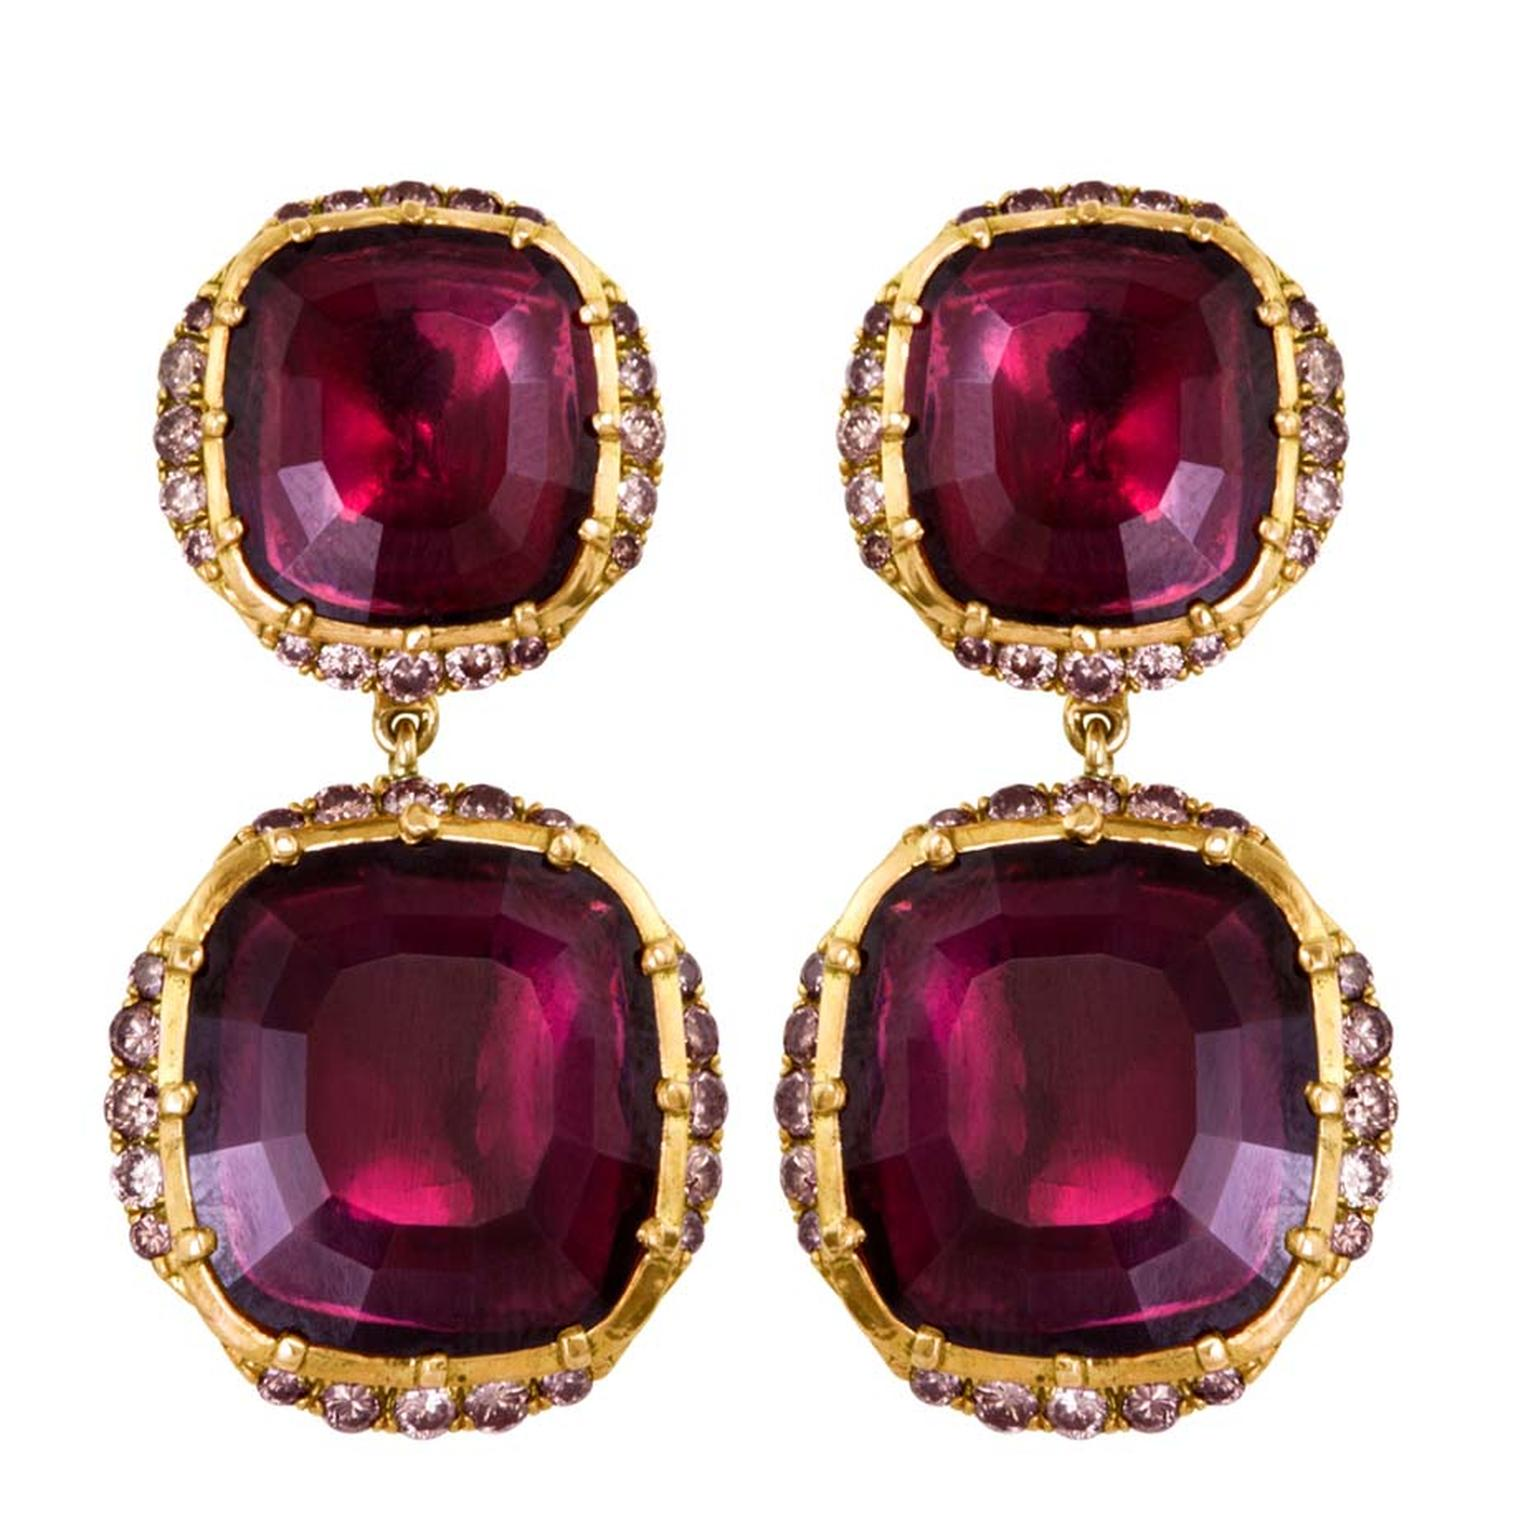 Larkspur & Hawk Caprice Wren two-drop garnet earrings in rose gold with rose gold foil and diamonds ($12,900).